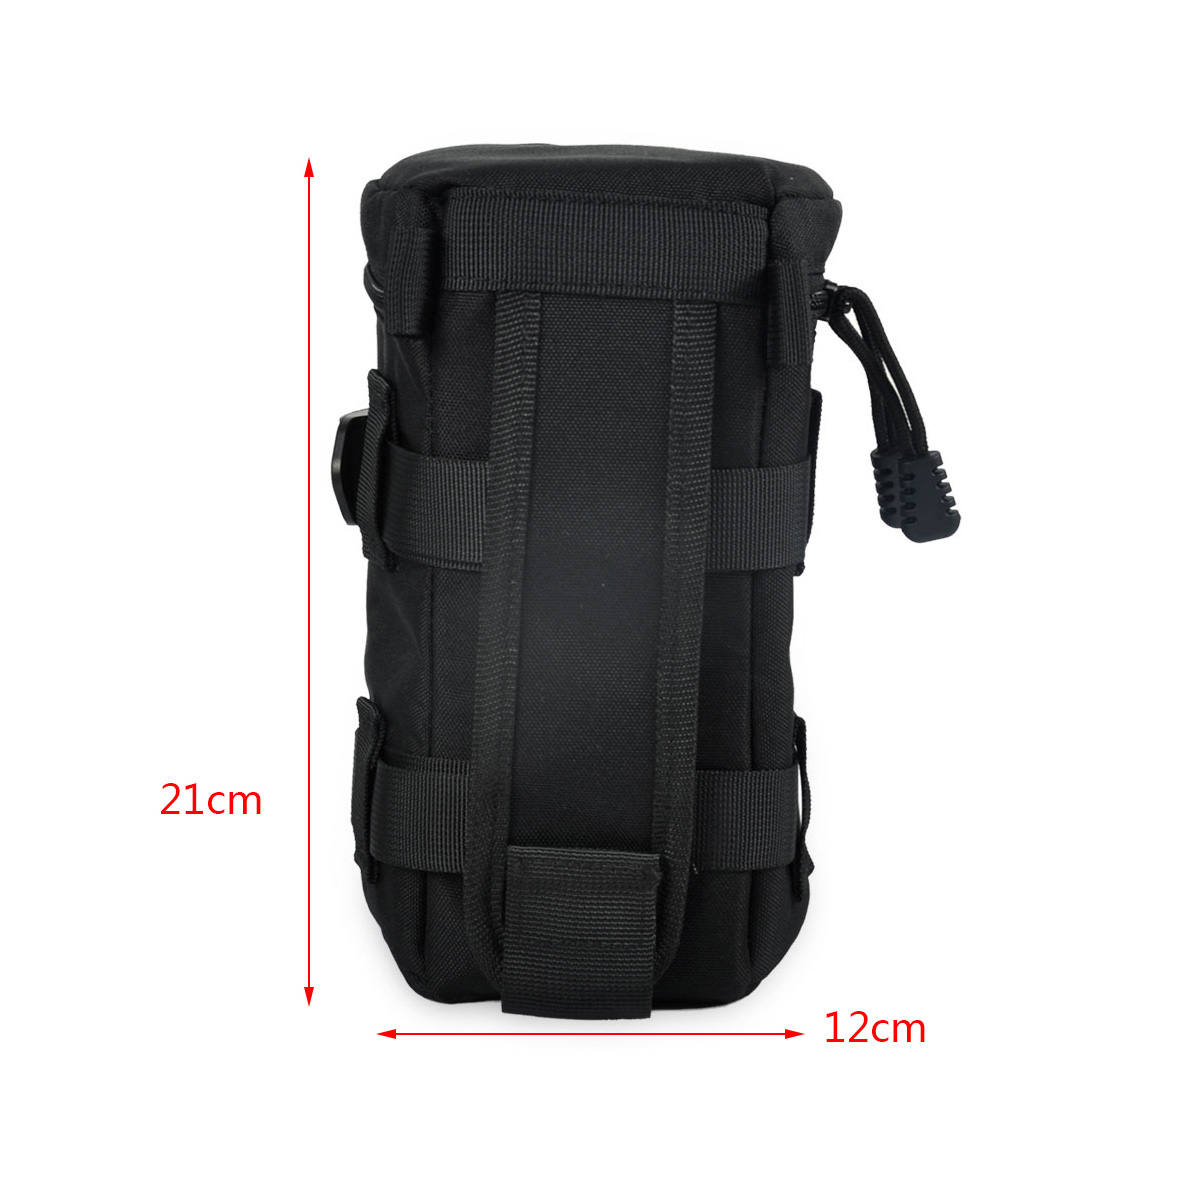 Camera Travel Pouch : Universal camera lens protector pouch case bag with belt